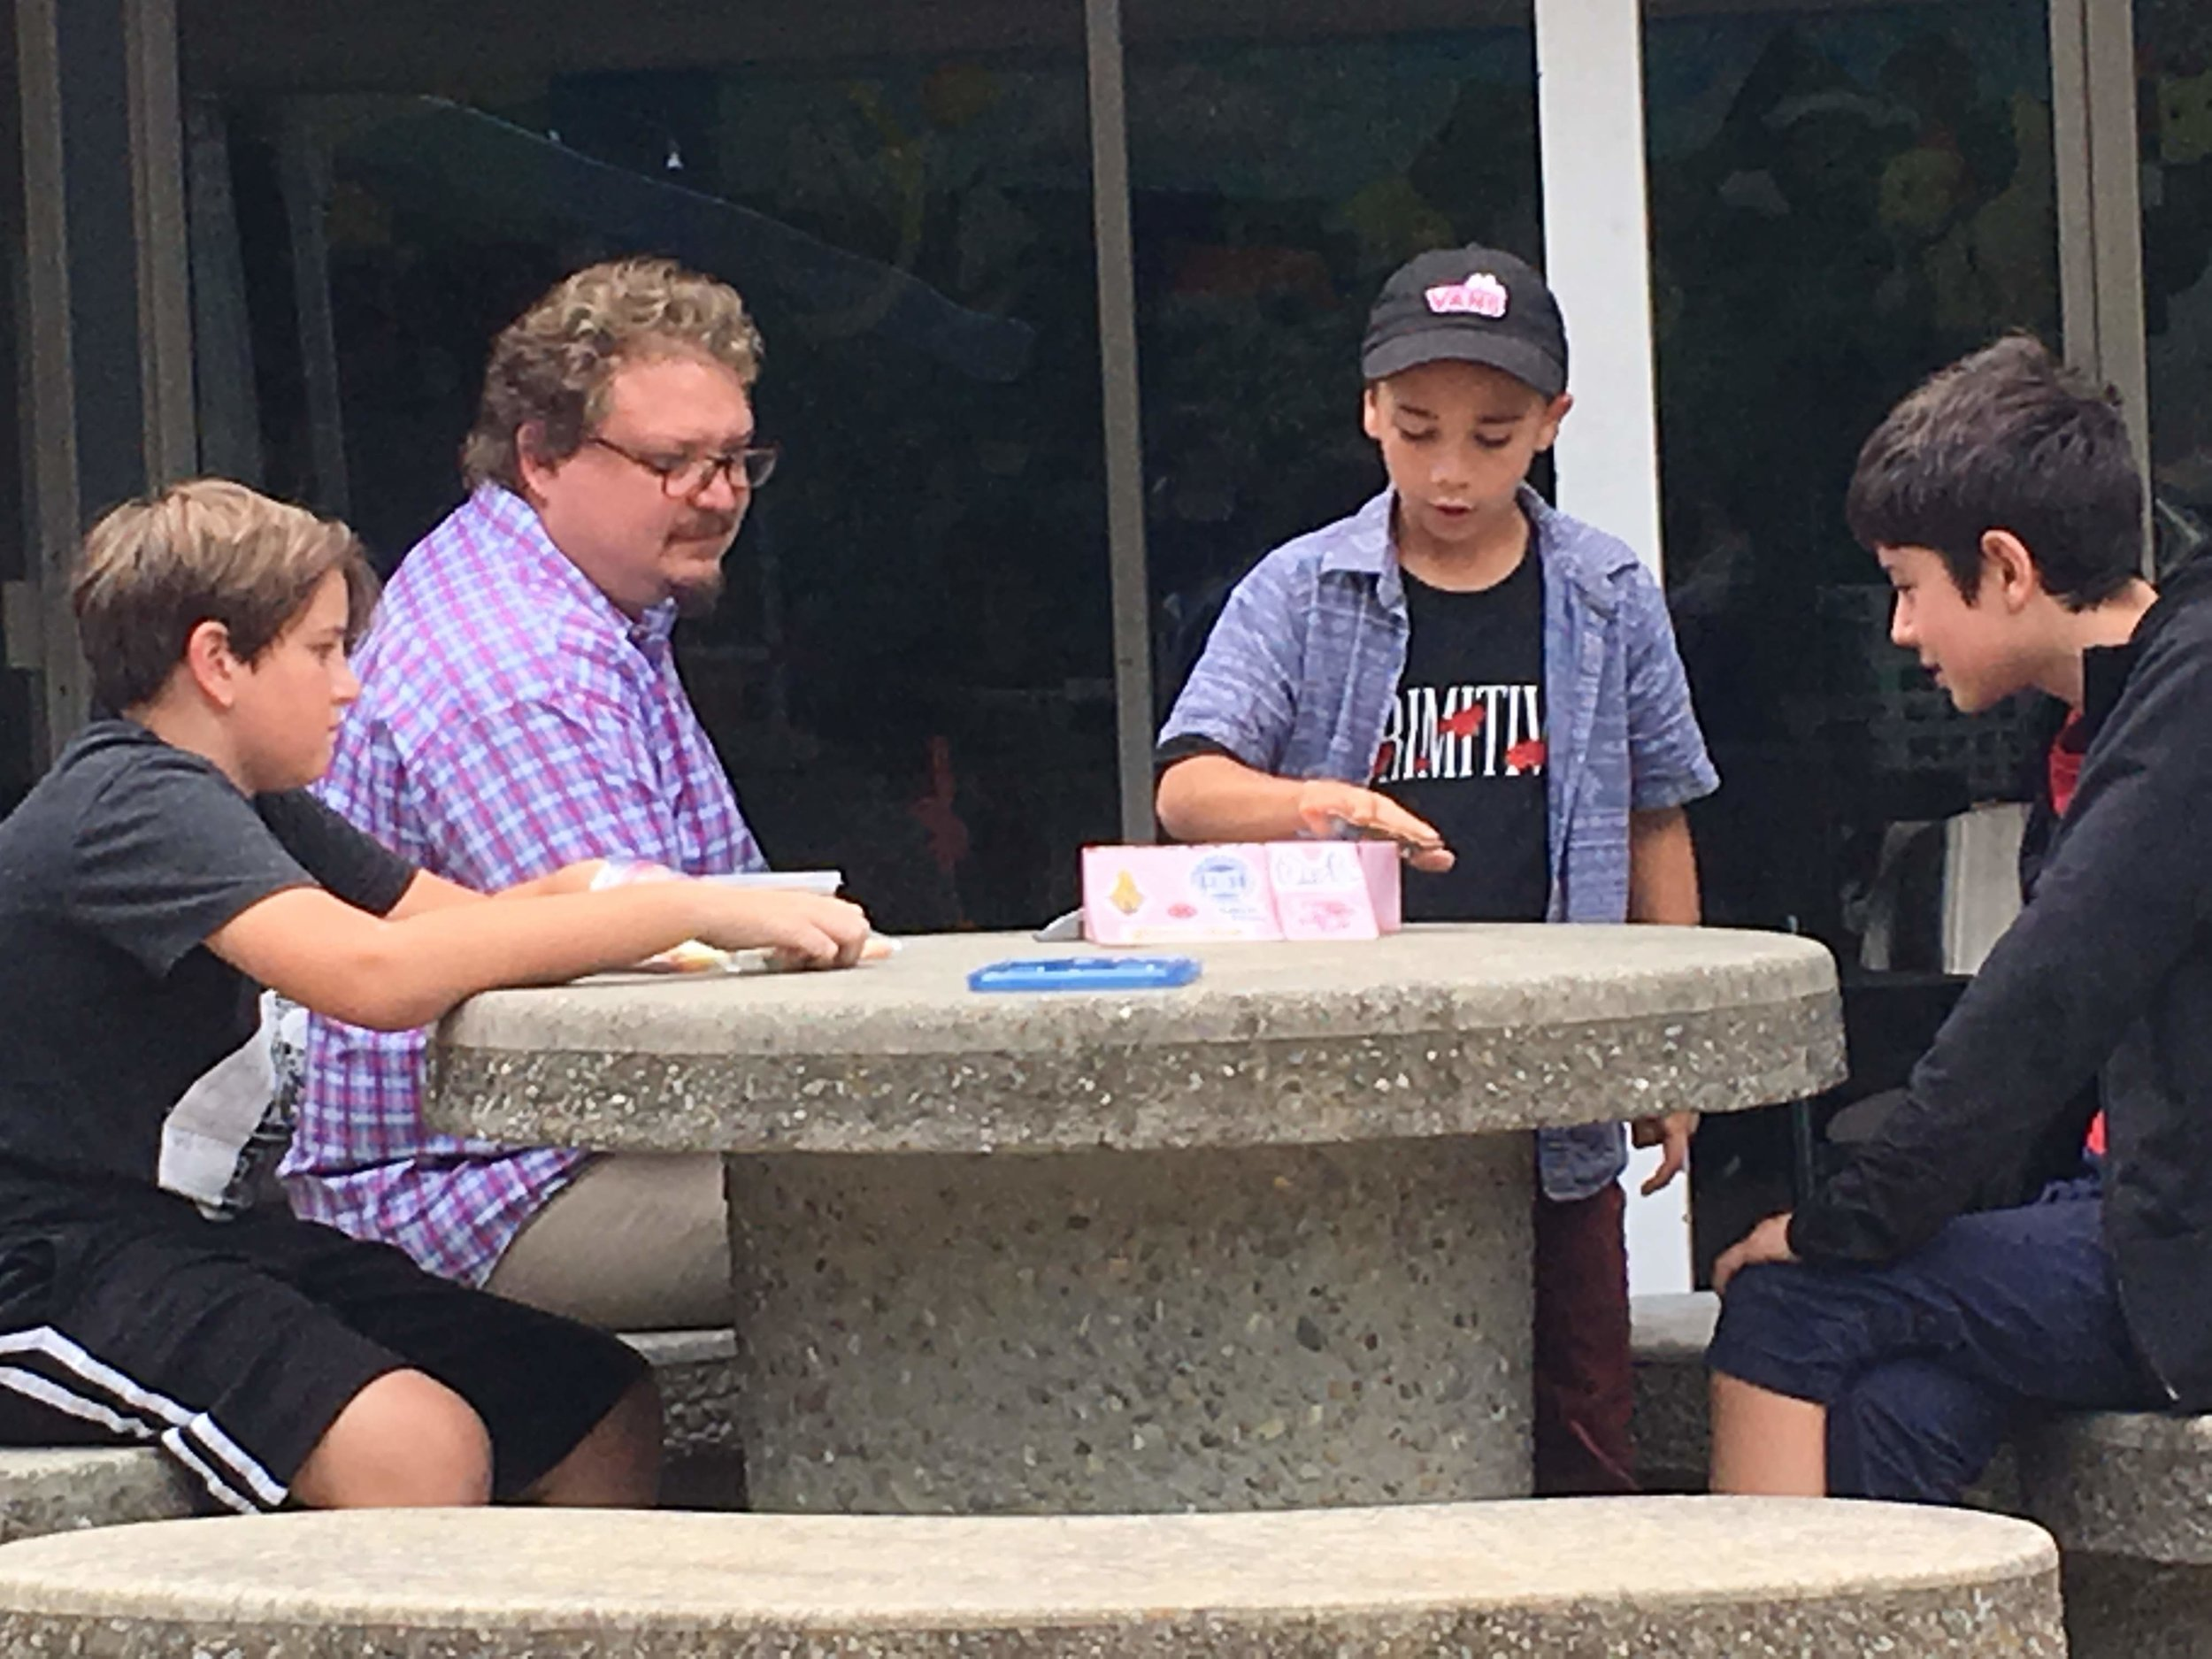 Faculty member sitting with middle school students